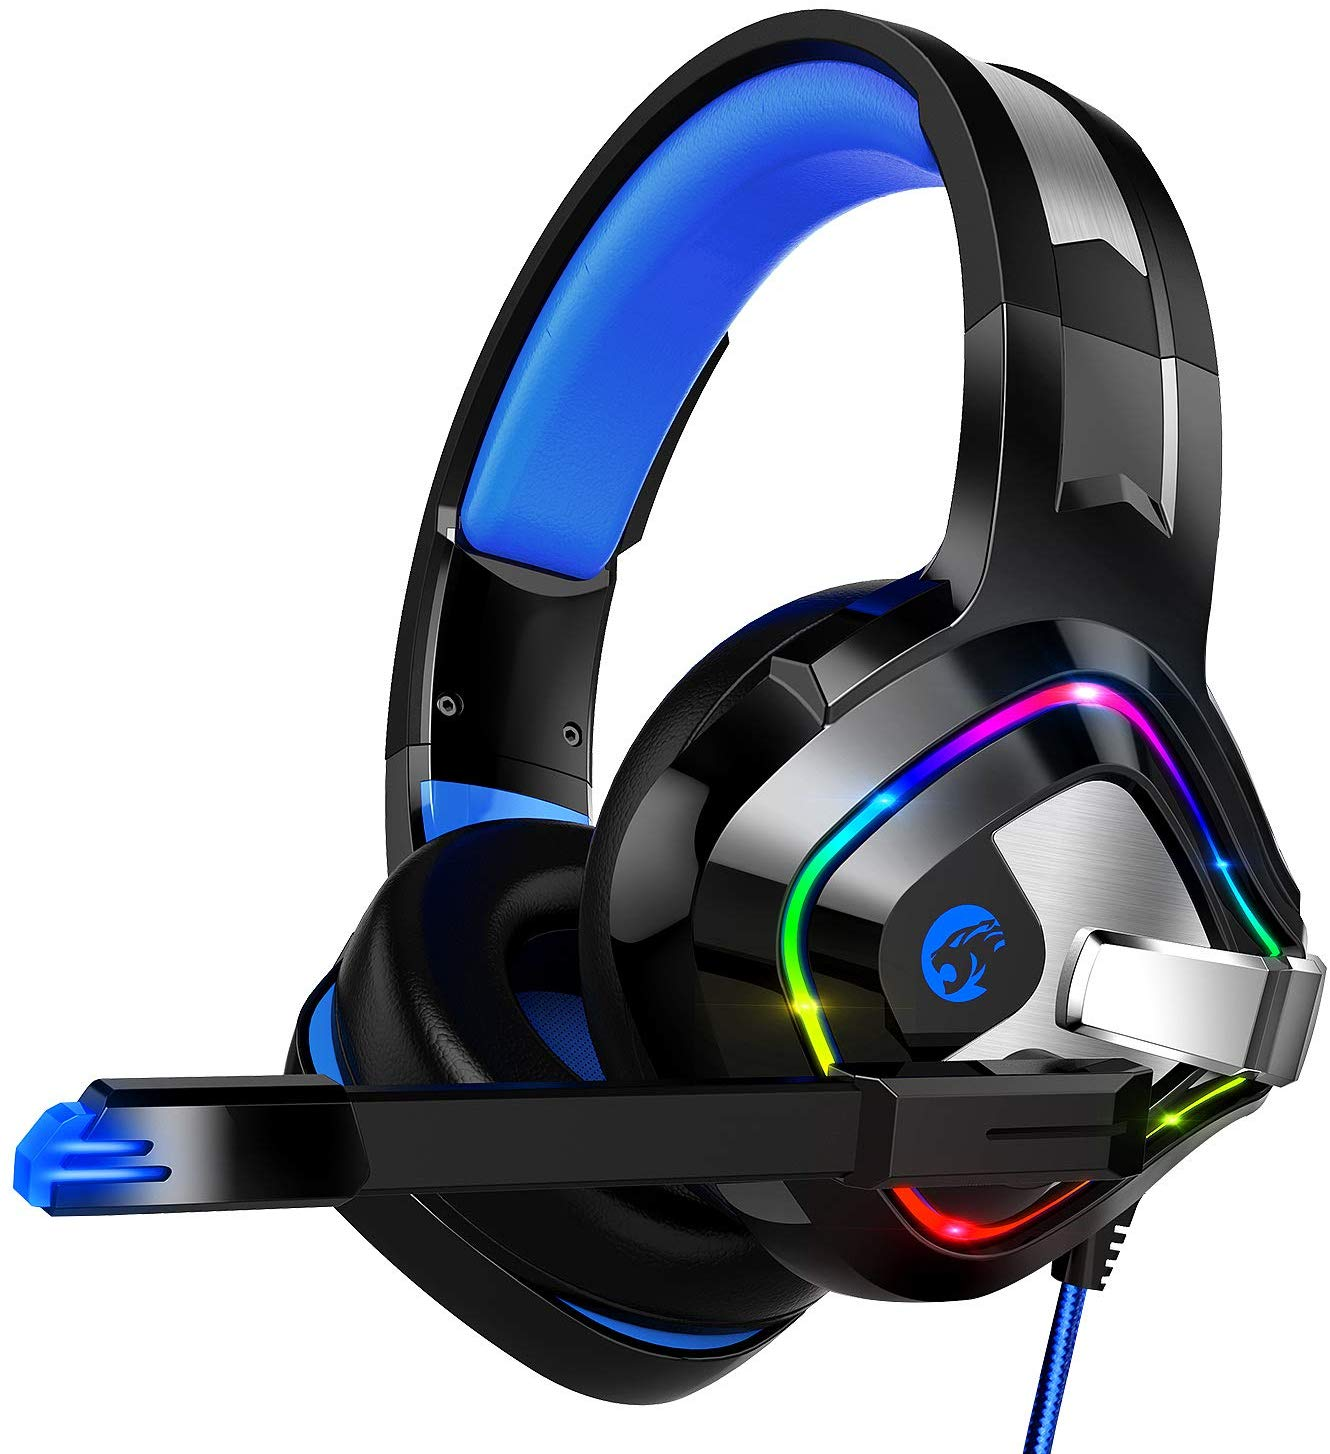 ZIUMIER Gaming Headset PS4 Headset, Xbox One Headset with Noise Canceling Mic and Rgb Light, PC Headset with Stereo Surround Sound, Over-Ear Headphones for...